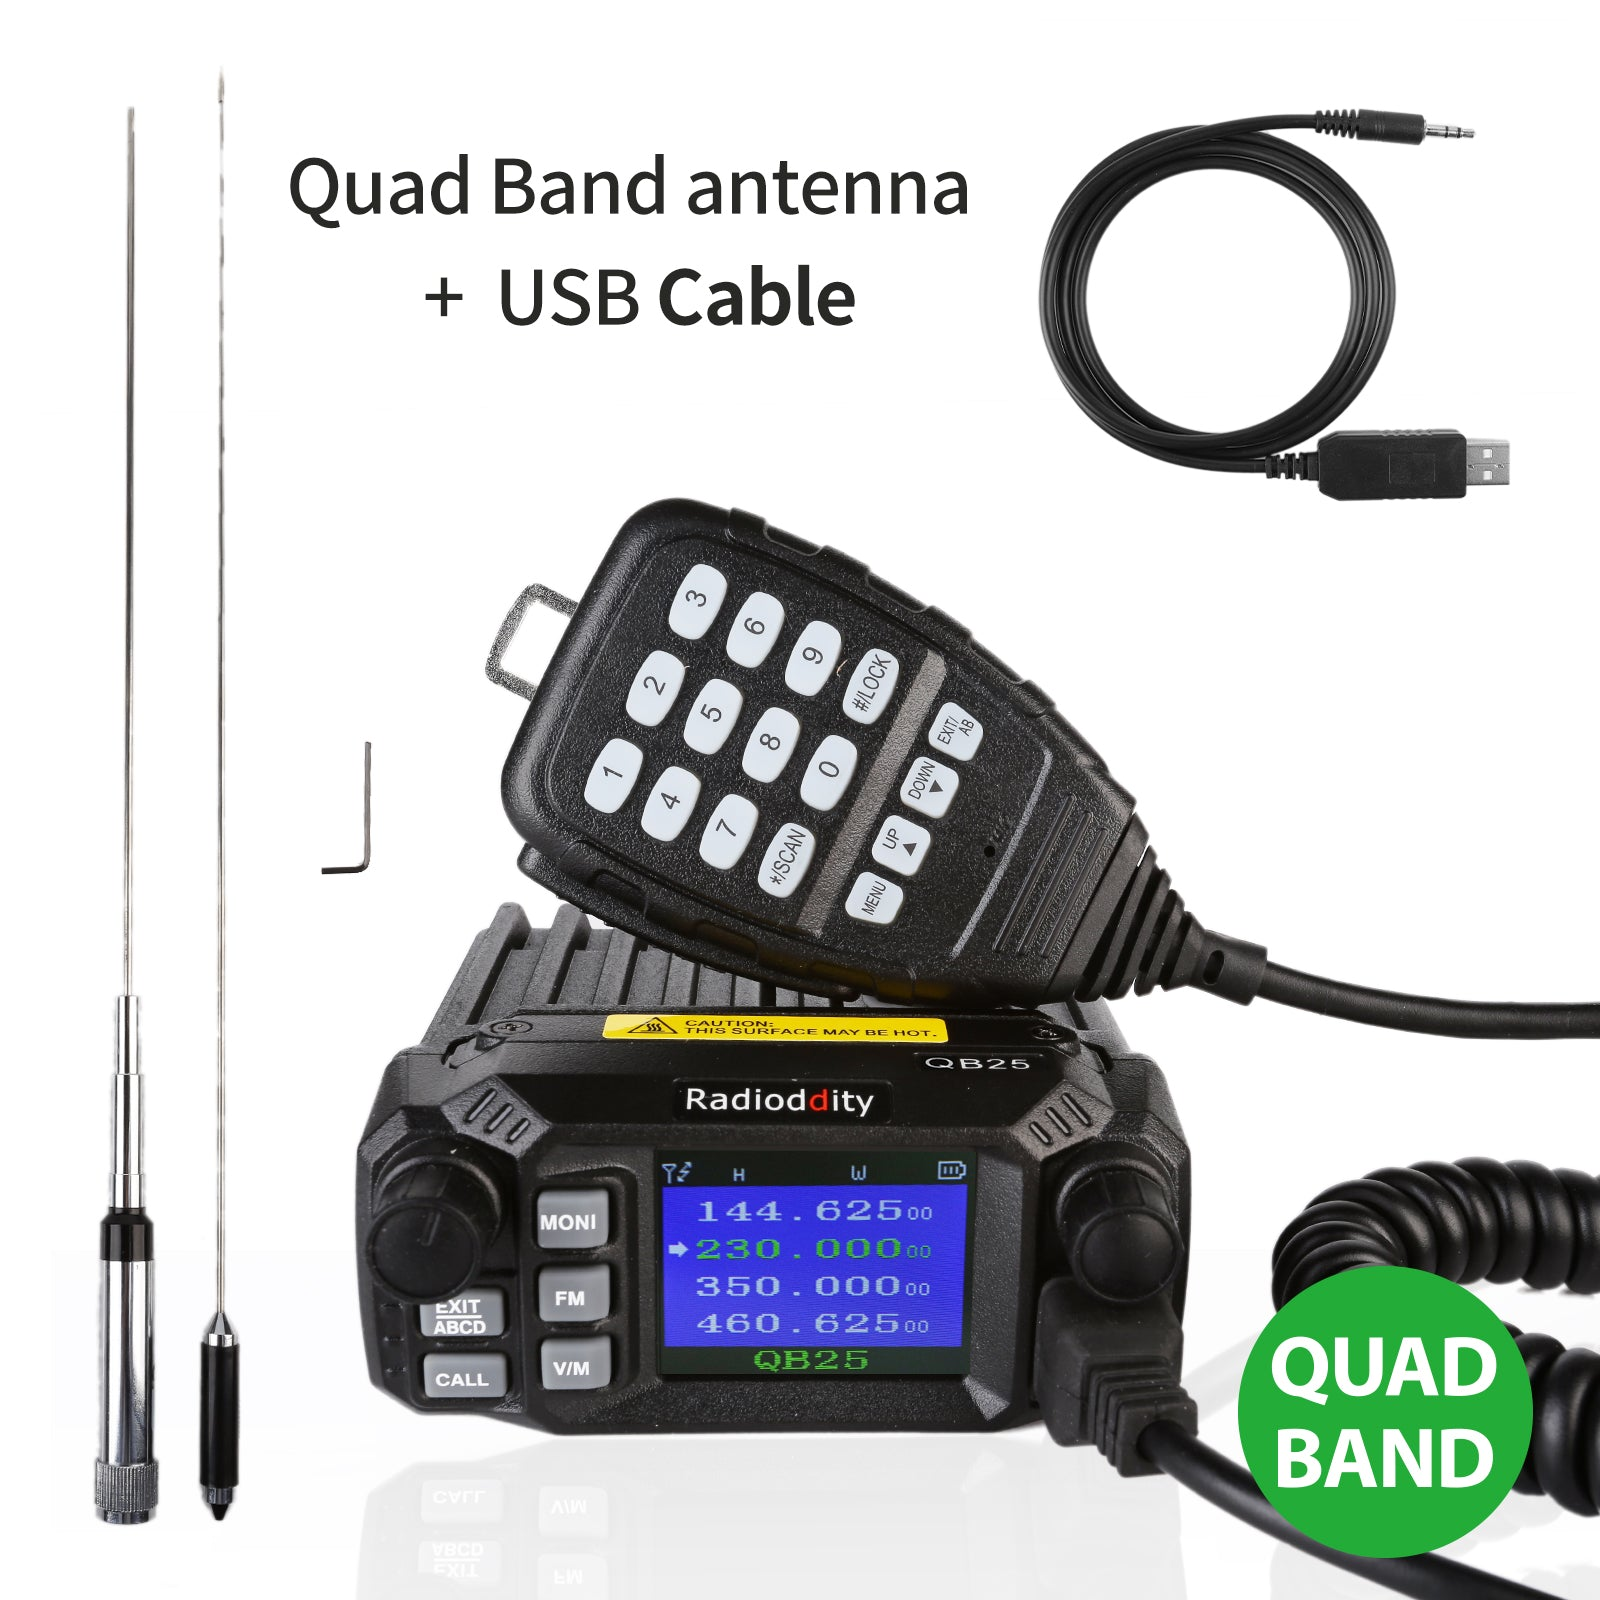 Cable Tester Uses Quad Latch